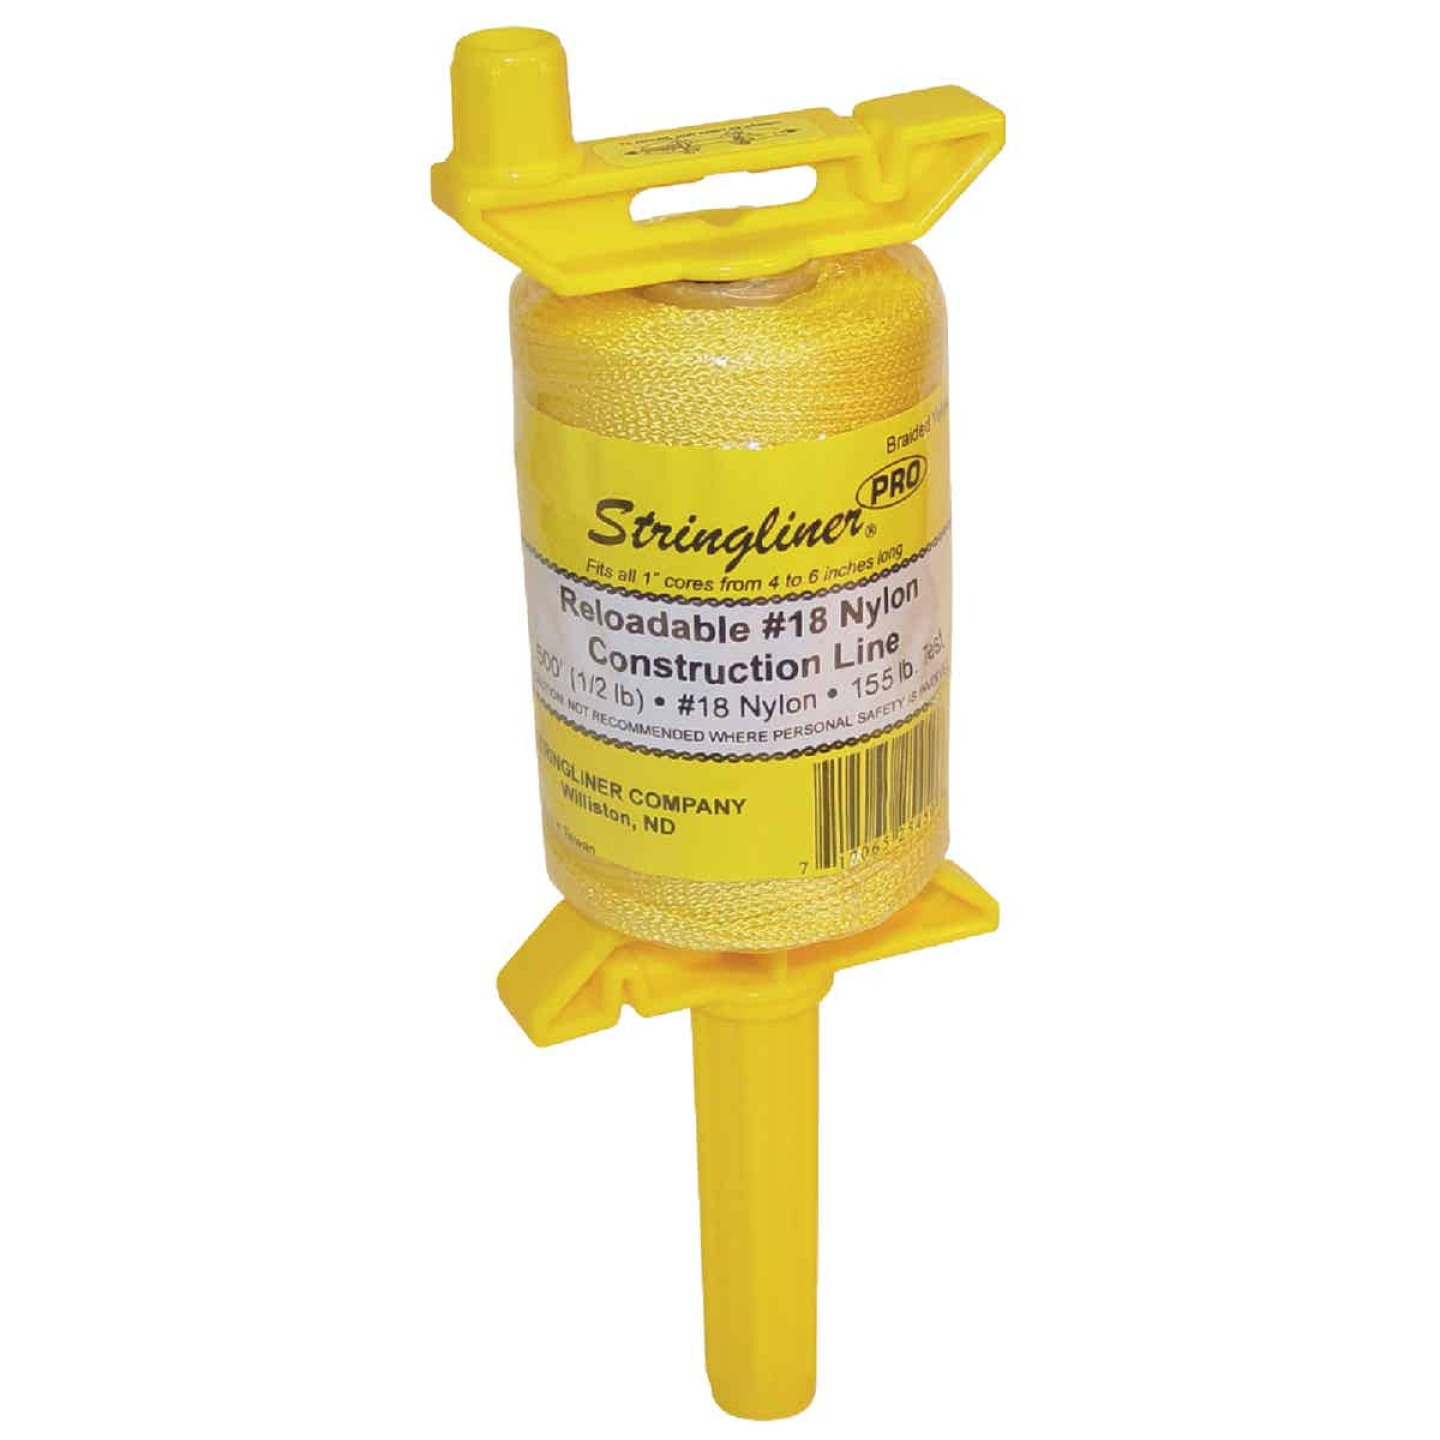 Stringliner PRO 500 Ft. Yellow Braided Nylon Mason Line Reel Image 1